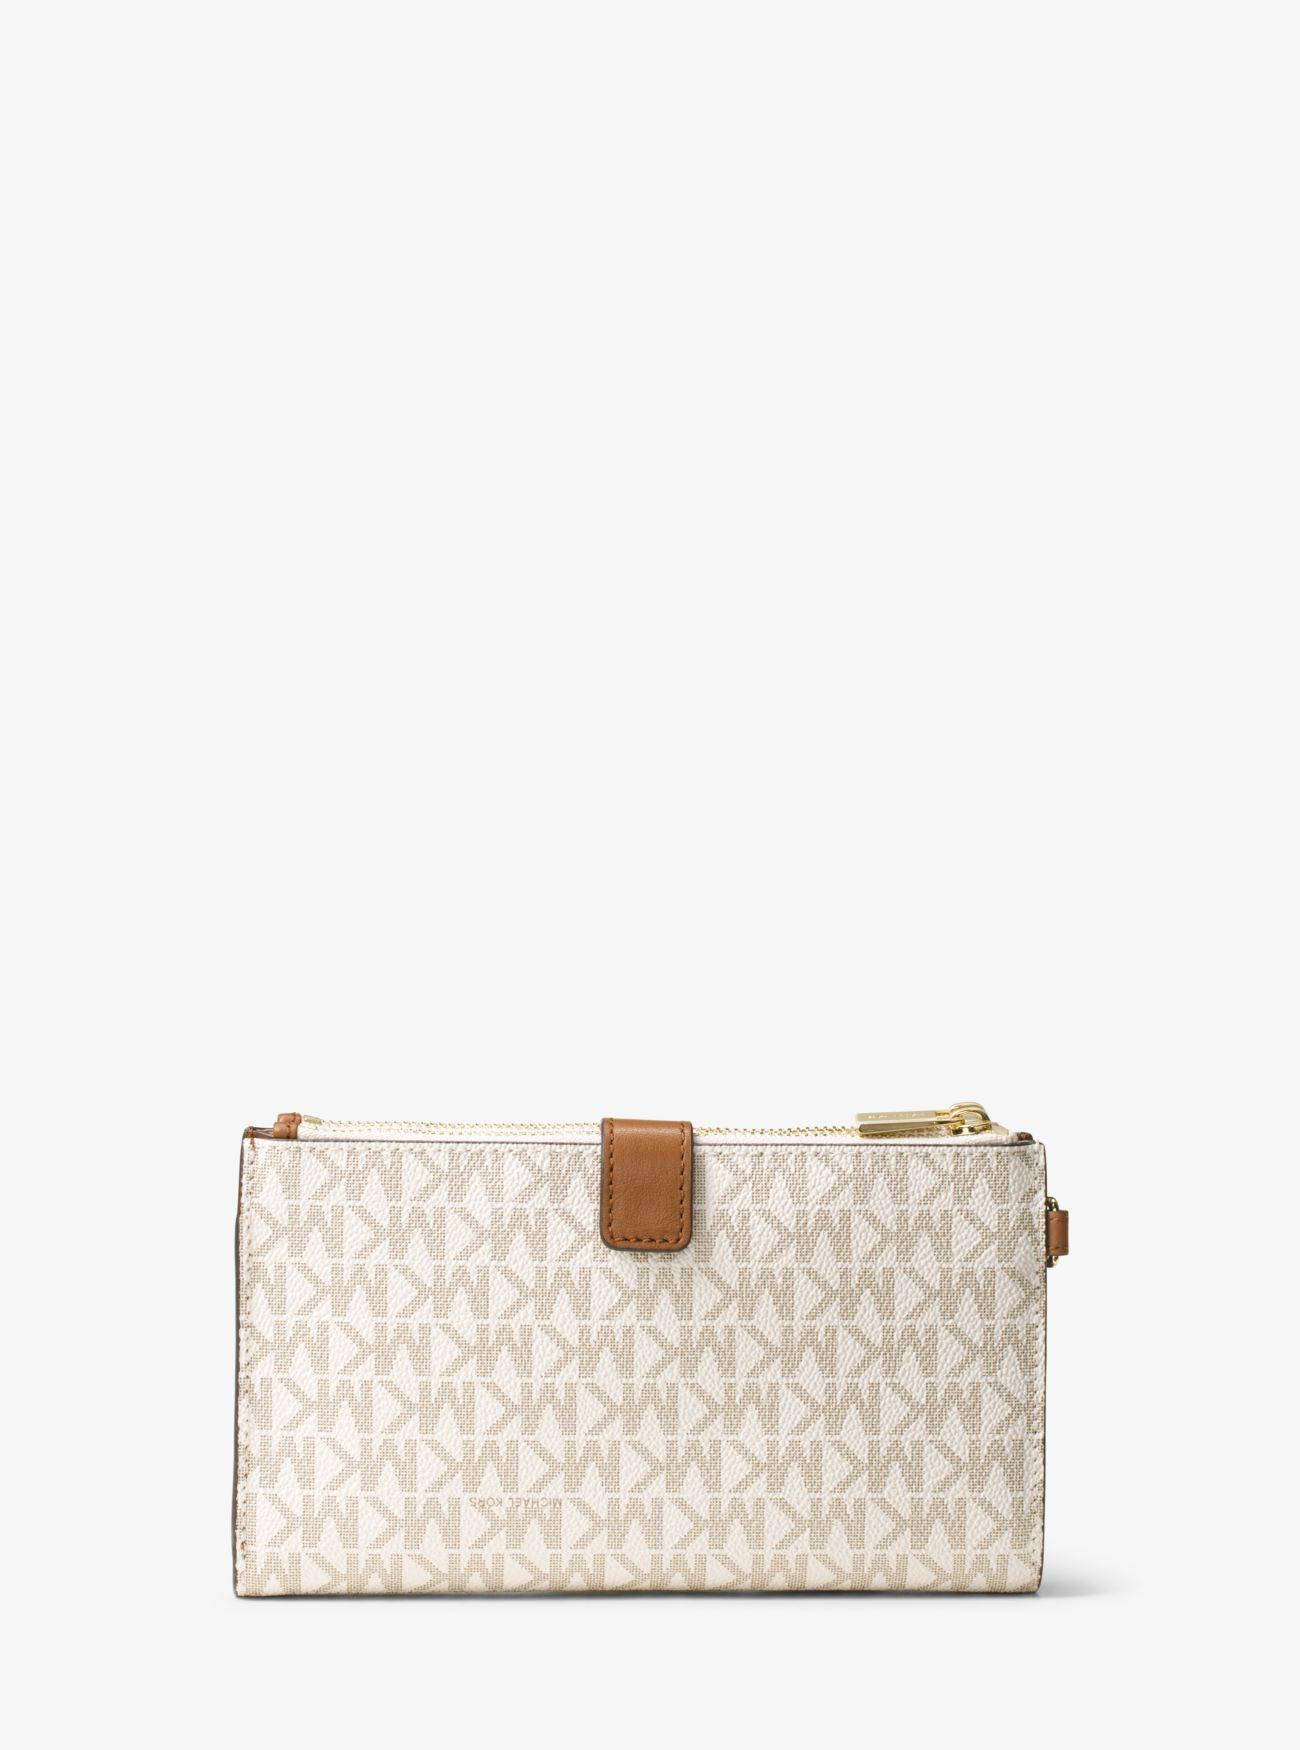 b6f2df98dcf6 Gallery. Previously sold at: Michael Kors · Women's Wristlets